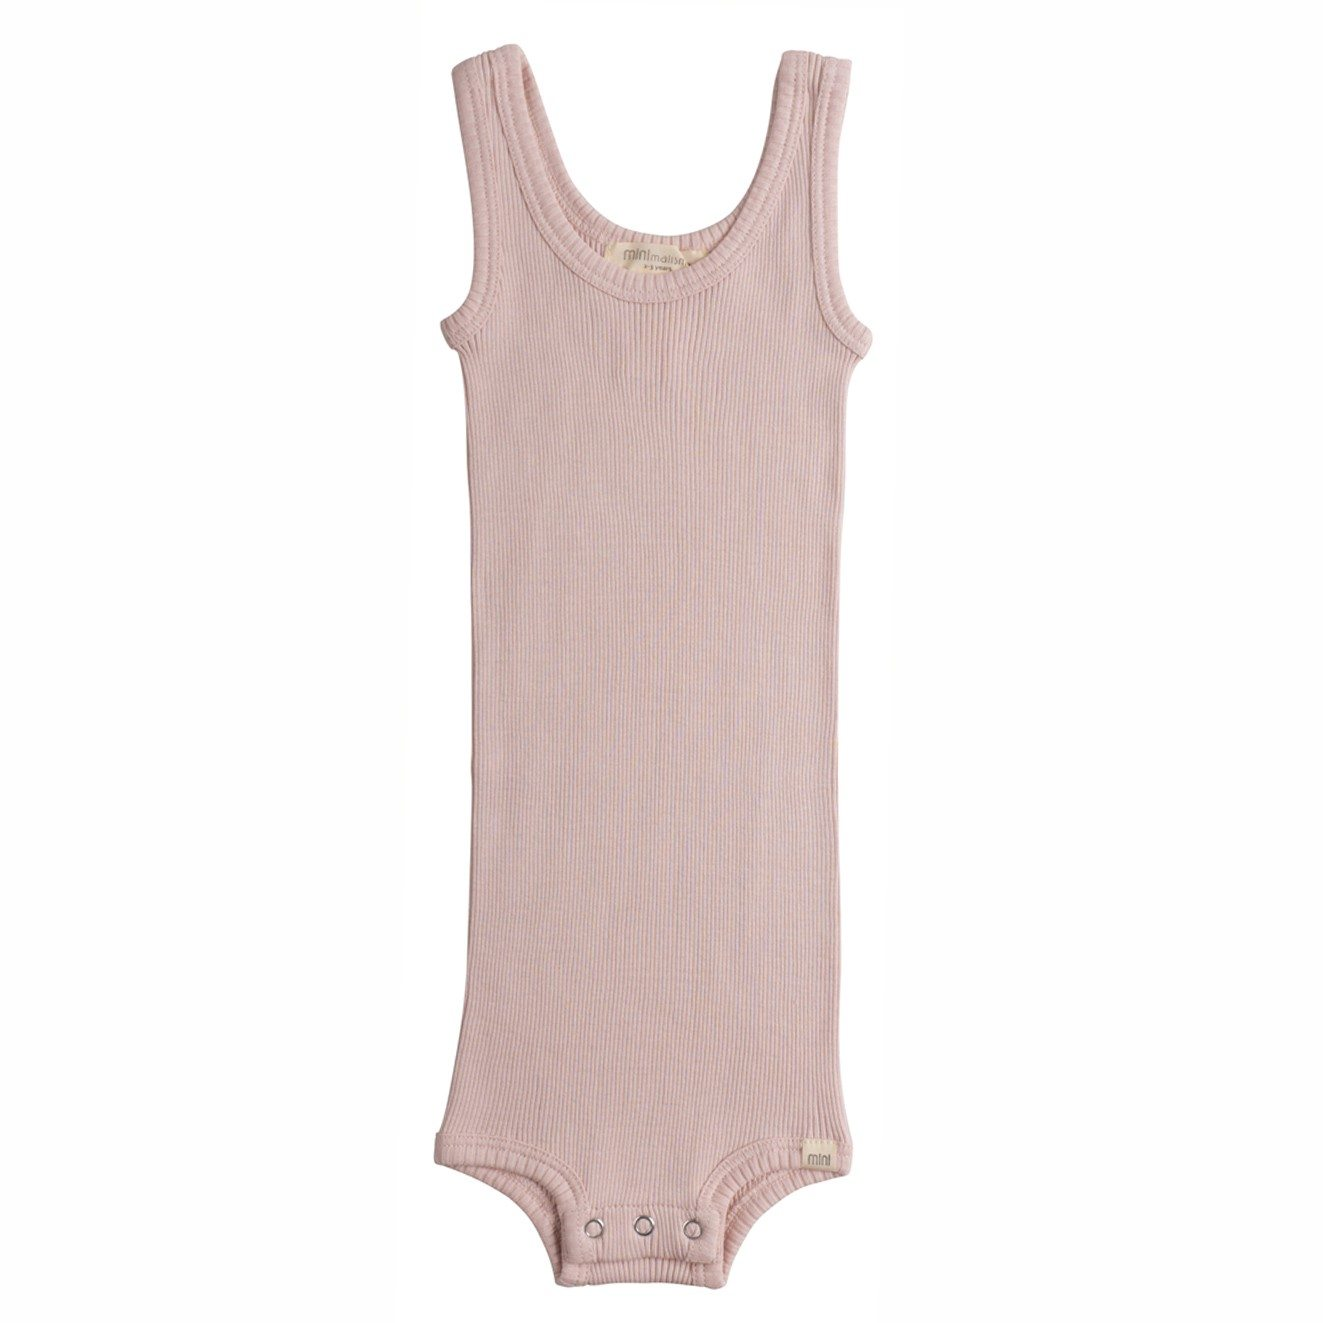 Minimalisma Minimalisma Body Bornholm - Sweet rose - Pearls & Swines